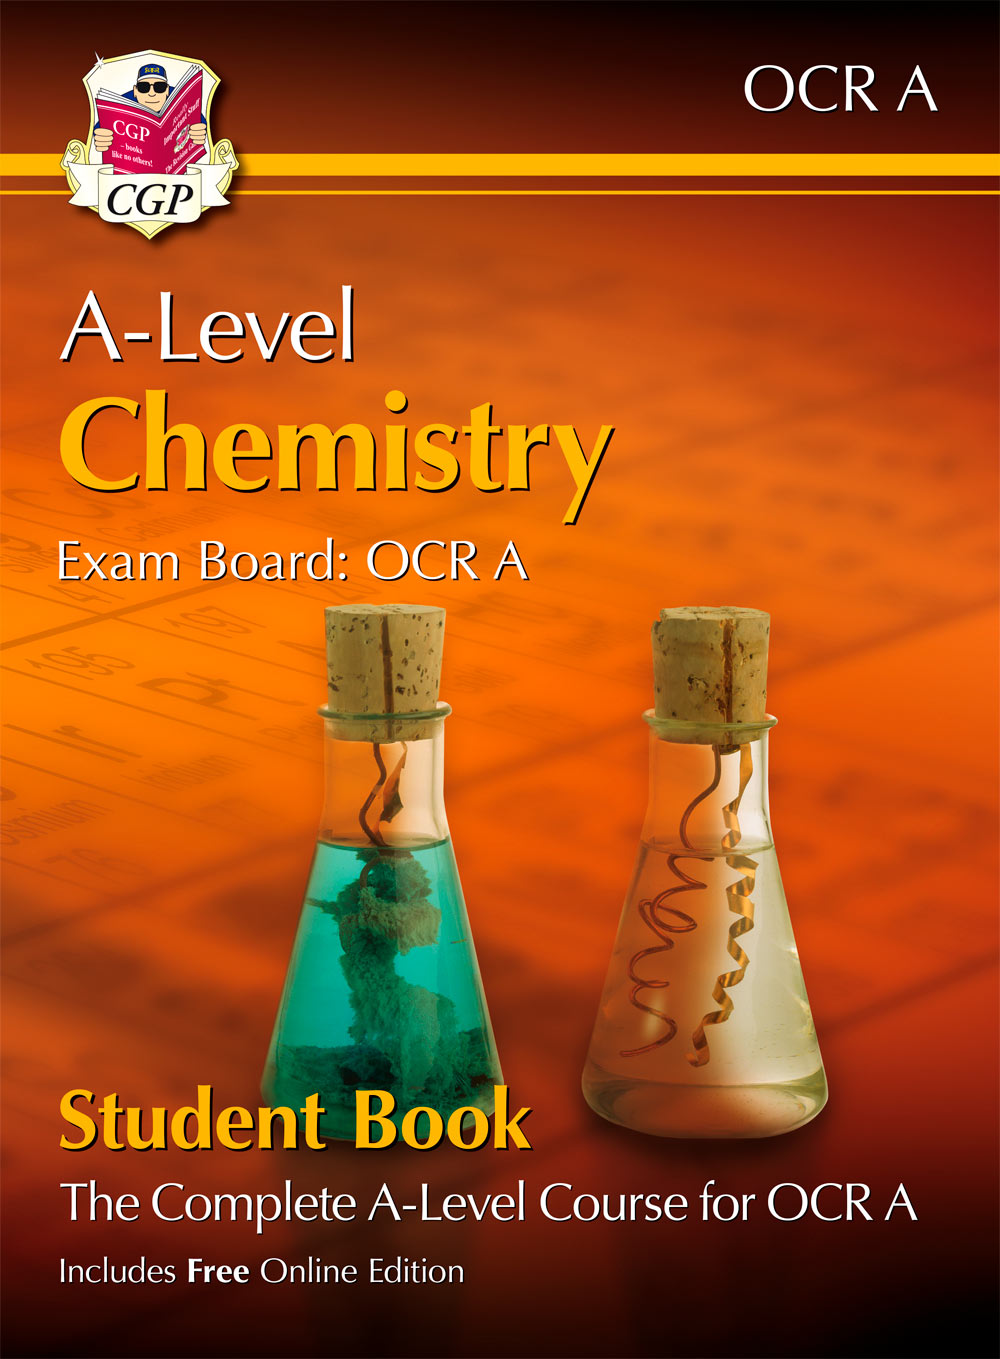 CRATB72 - New A-Level Chemistry for OCR A: Year 1 & 2 Student Book with Online Edition